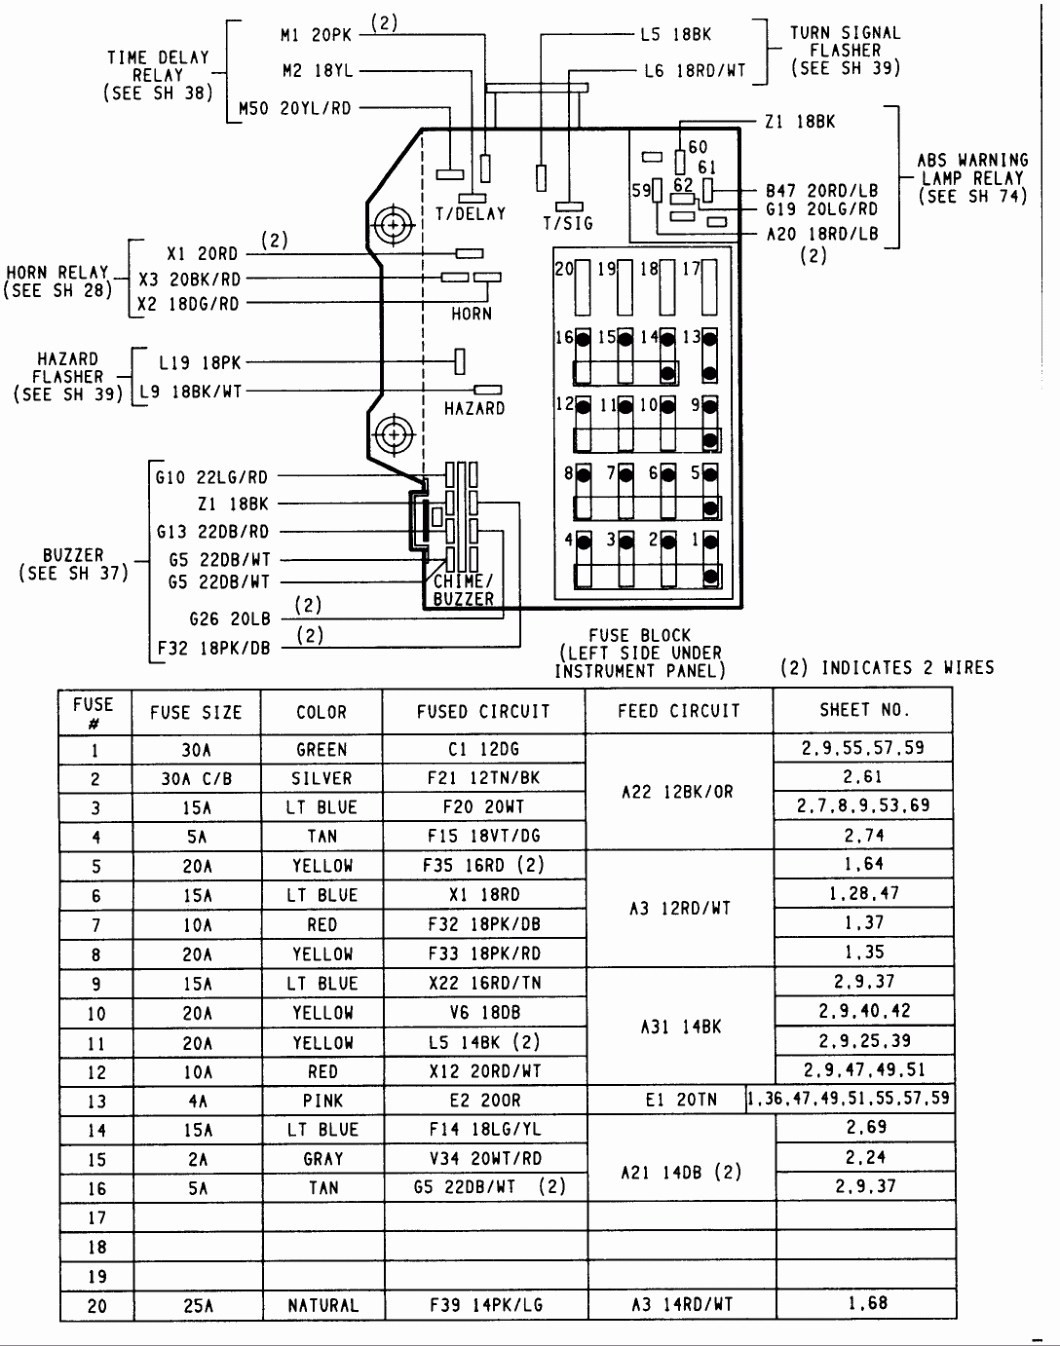 2013 dodge dart fuse box diagram - plymouth wiring diagrams for 1997 se vog  - light-switch.kdx-200.jeanjaures37.fr  wiring diagram resource